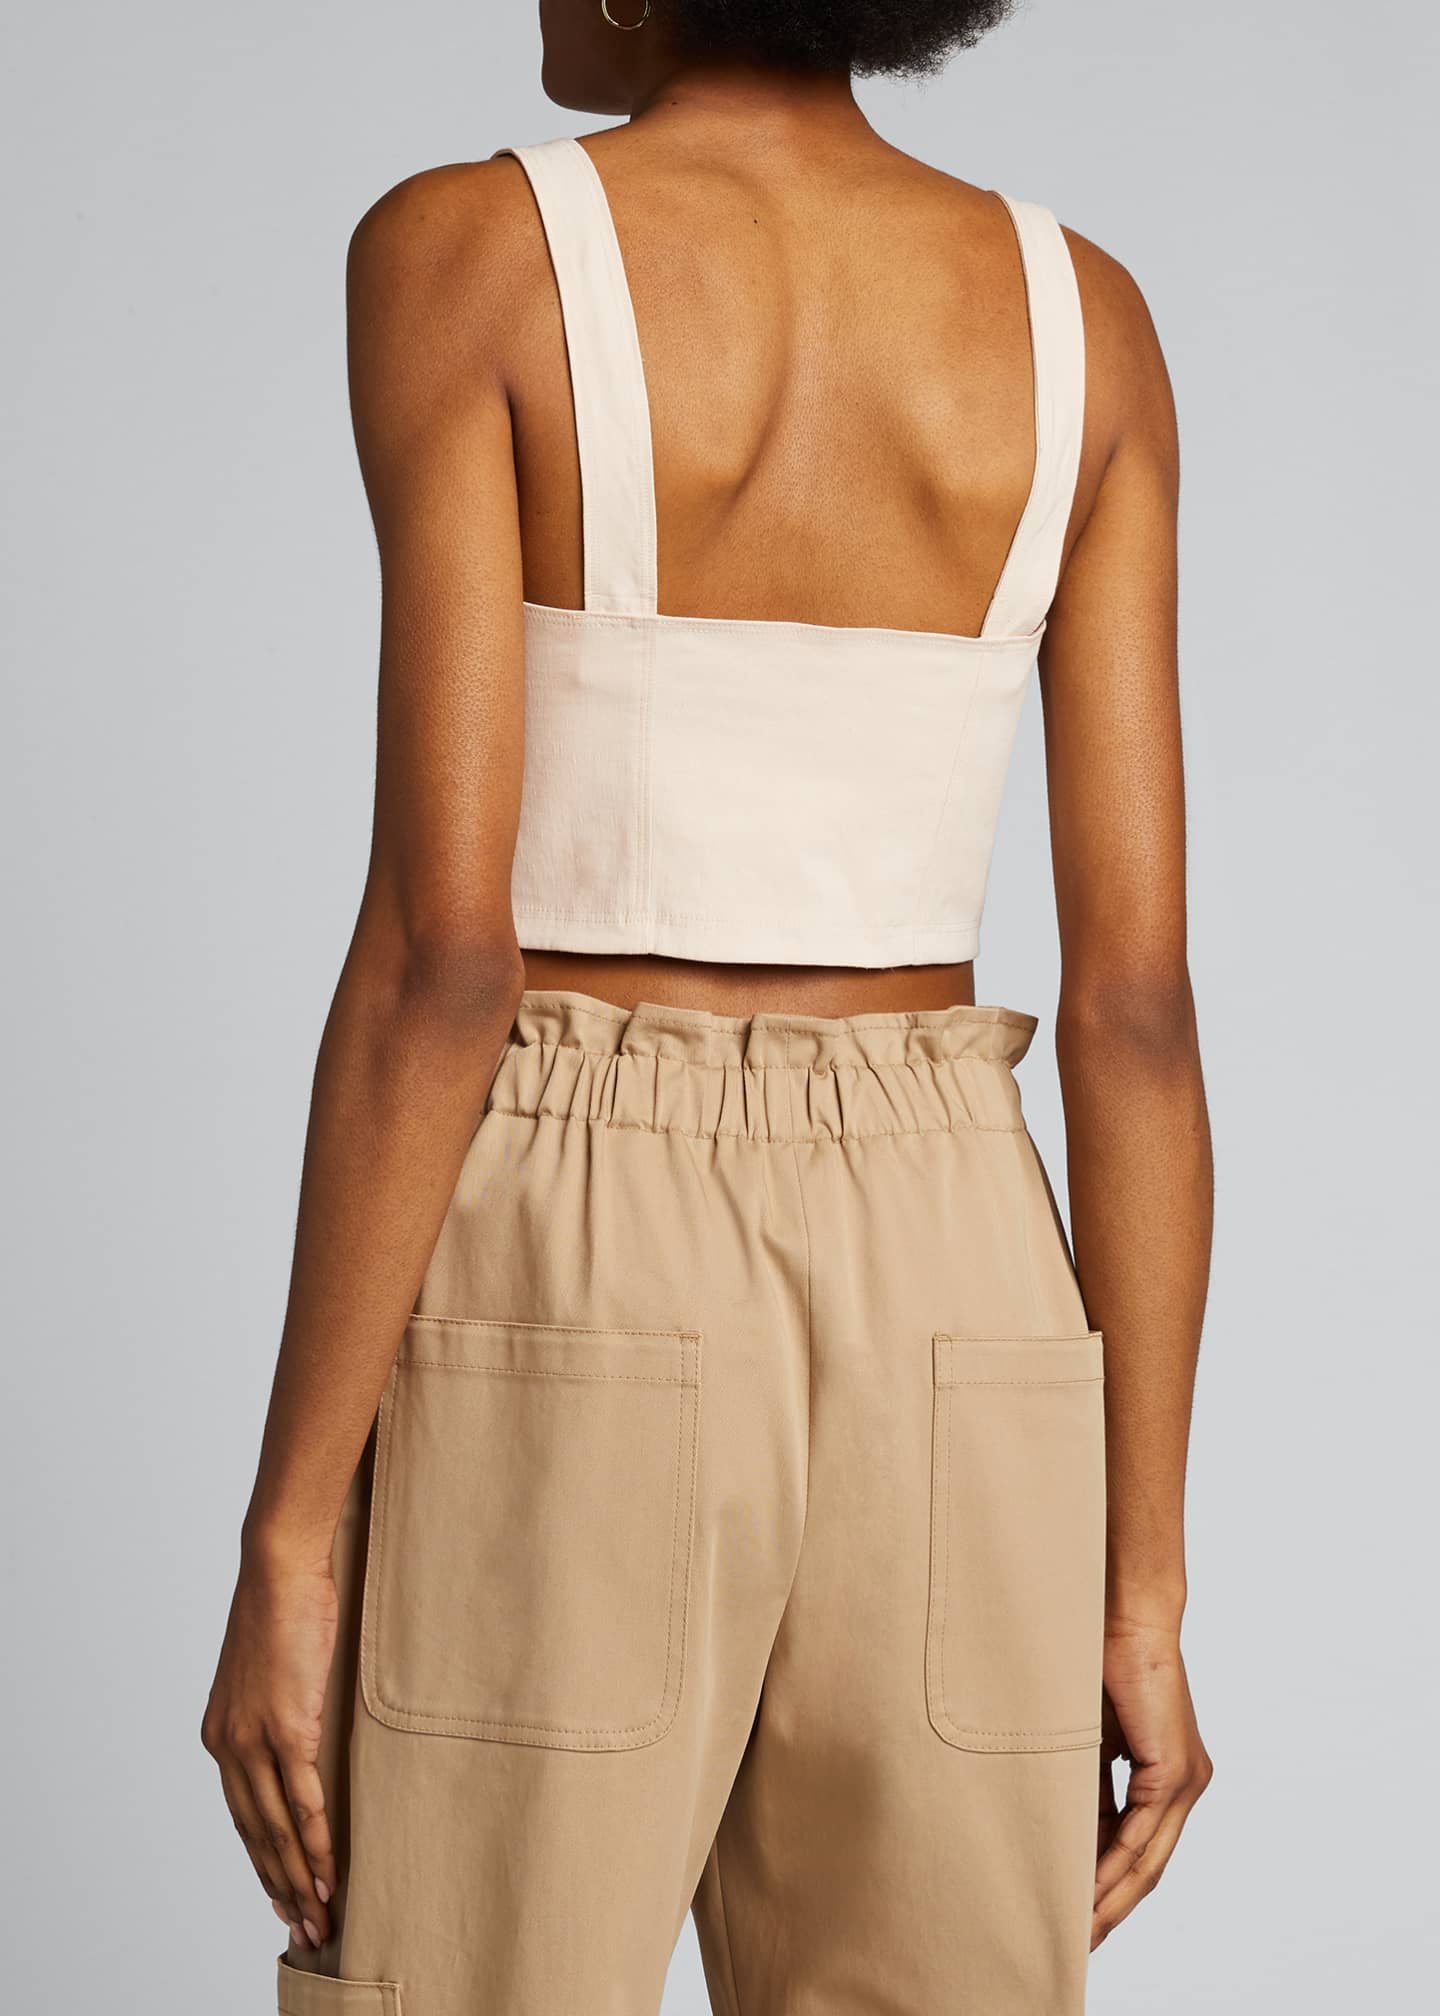 Image 2 of 5: Alessandra Cropped Bustier Top